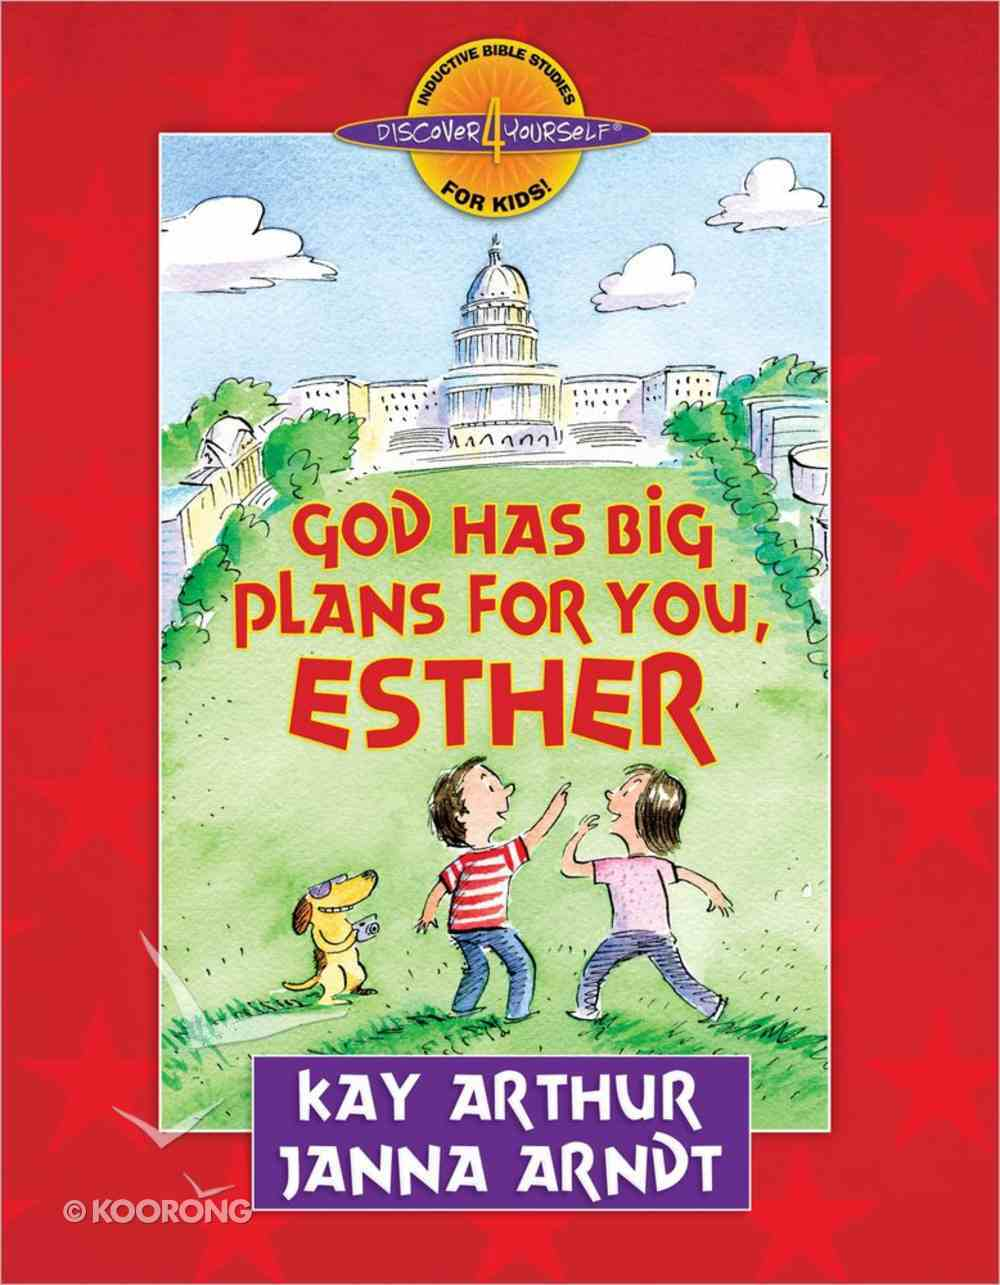 God Has Big Plans For You (Esther) (Discover For Yourself Bible Studies Series) Paperback